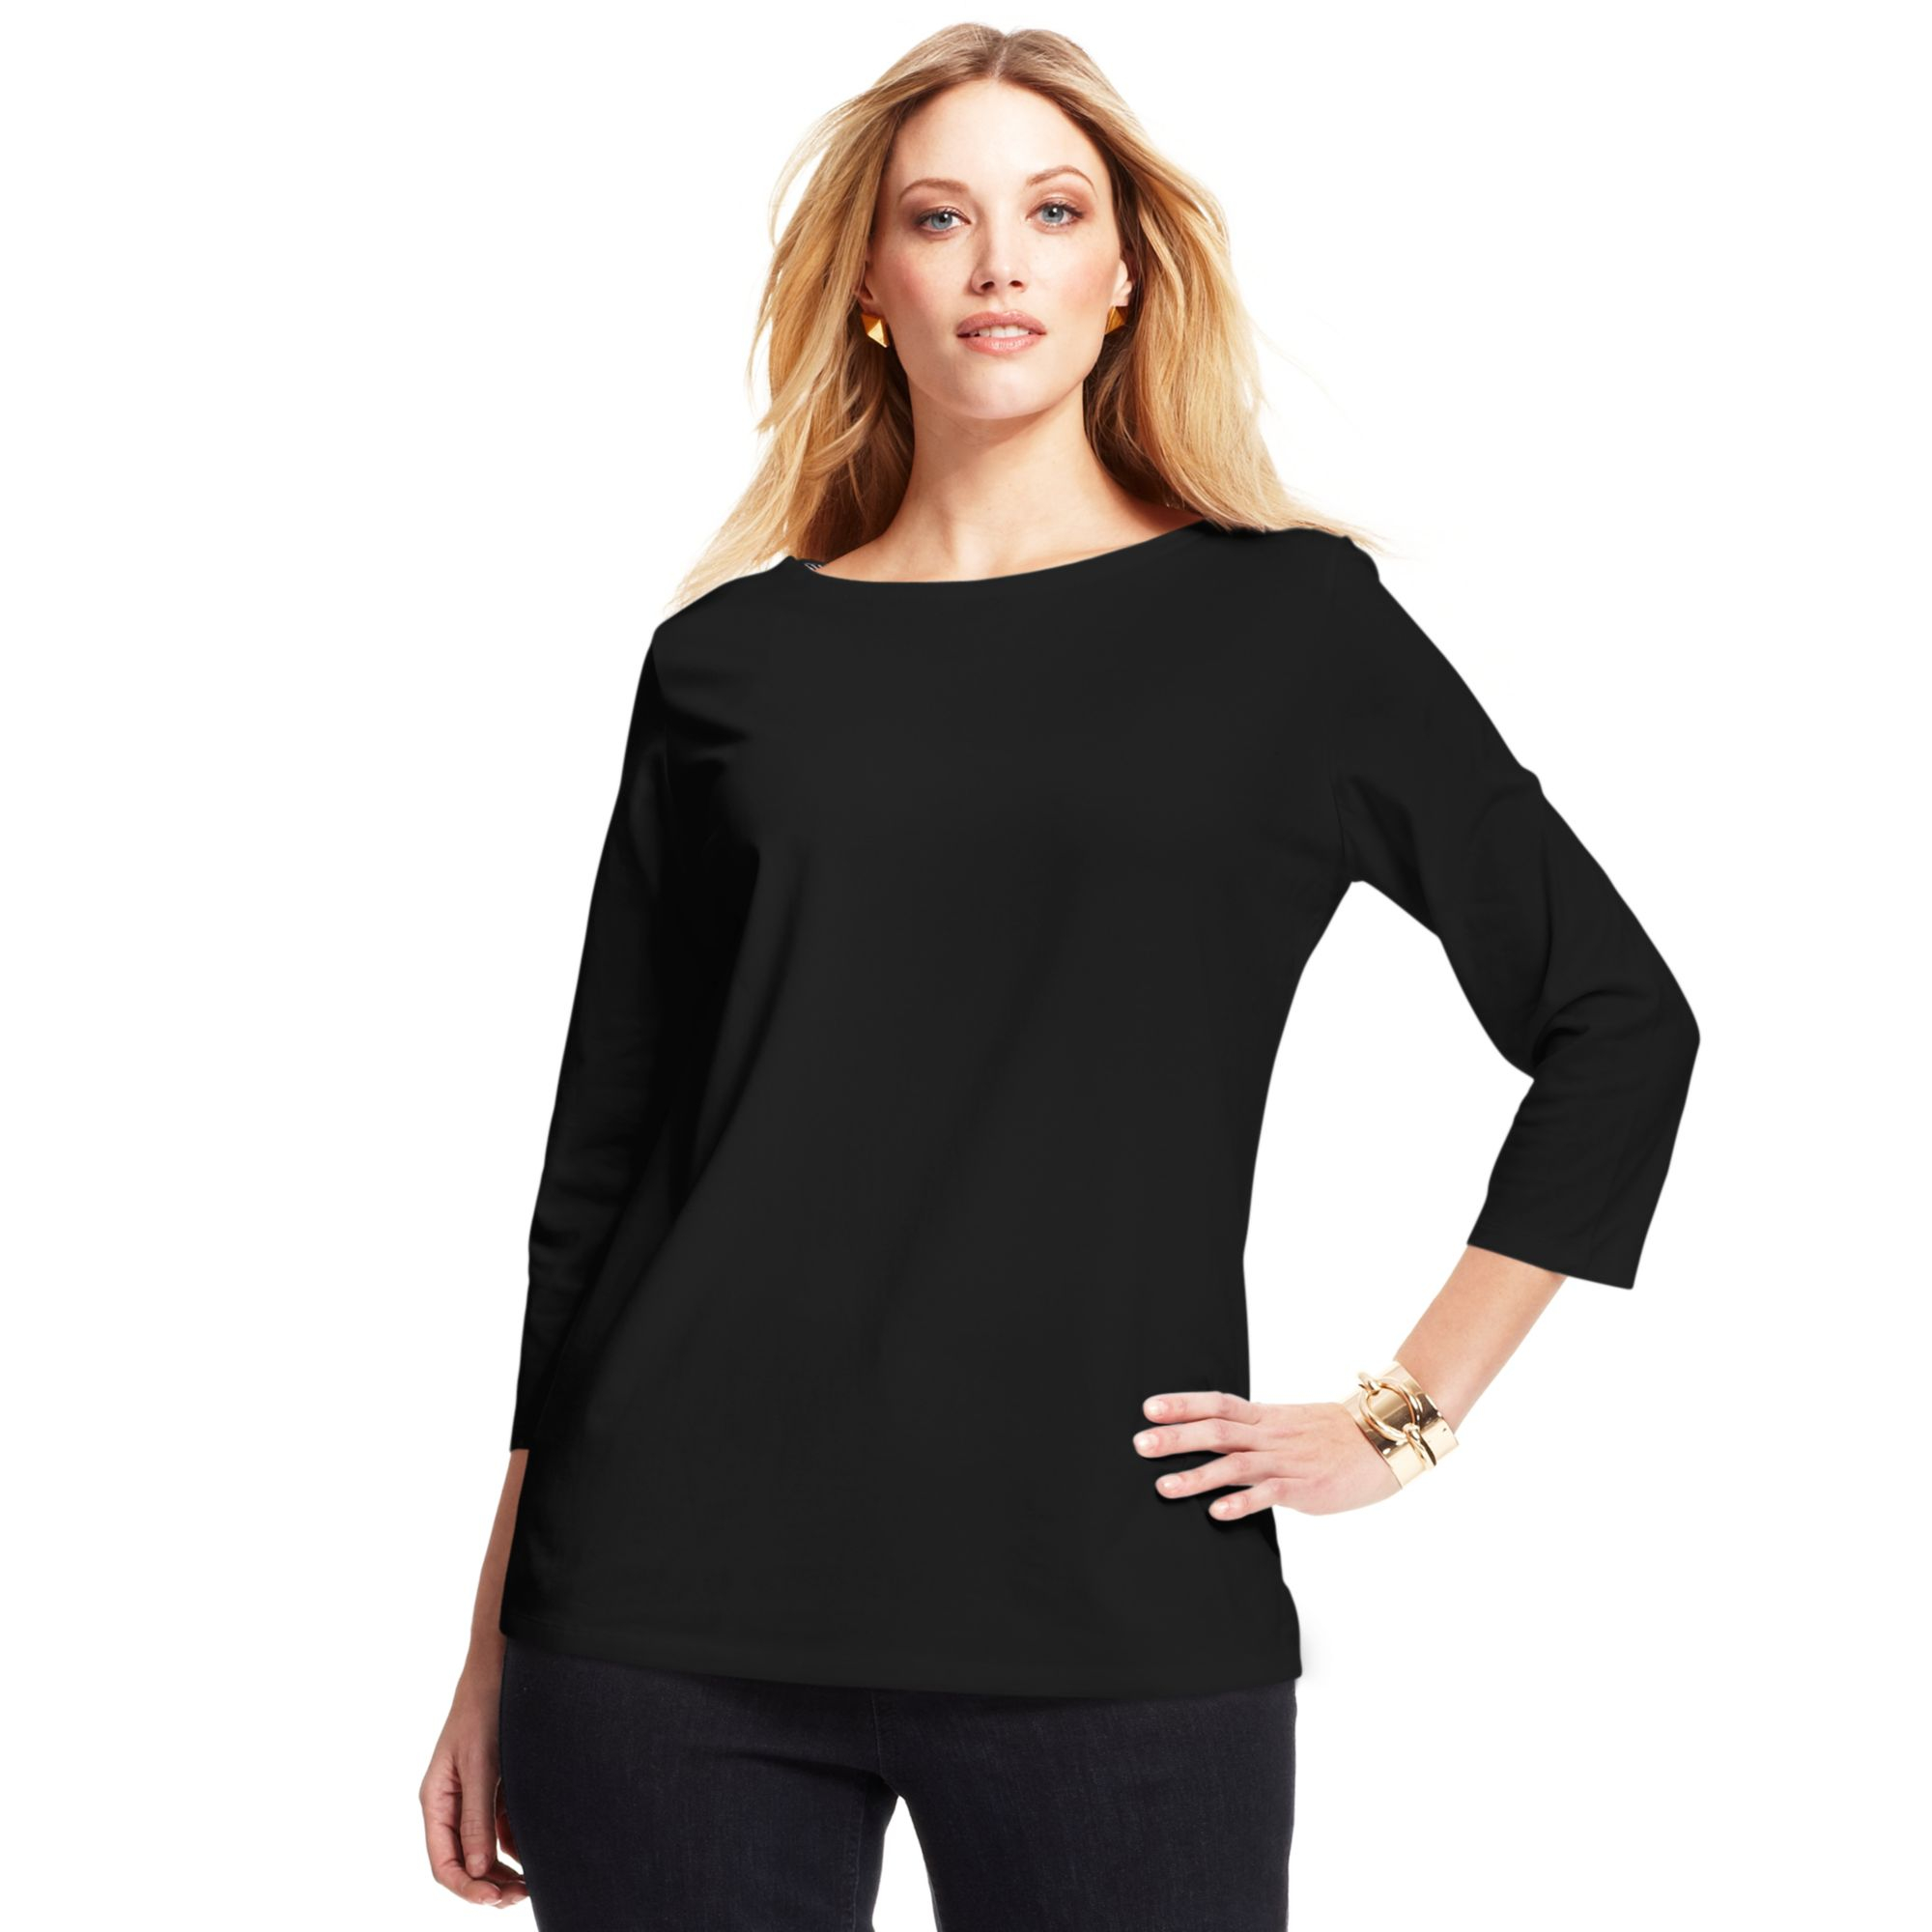 Jones Of New York Plus Size Womens Clothing